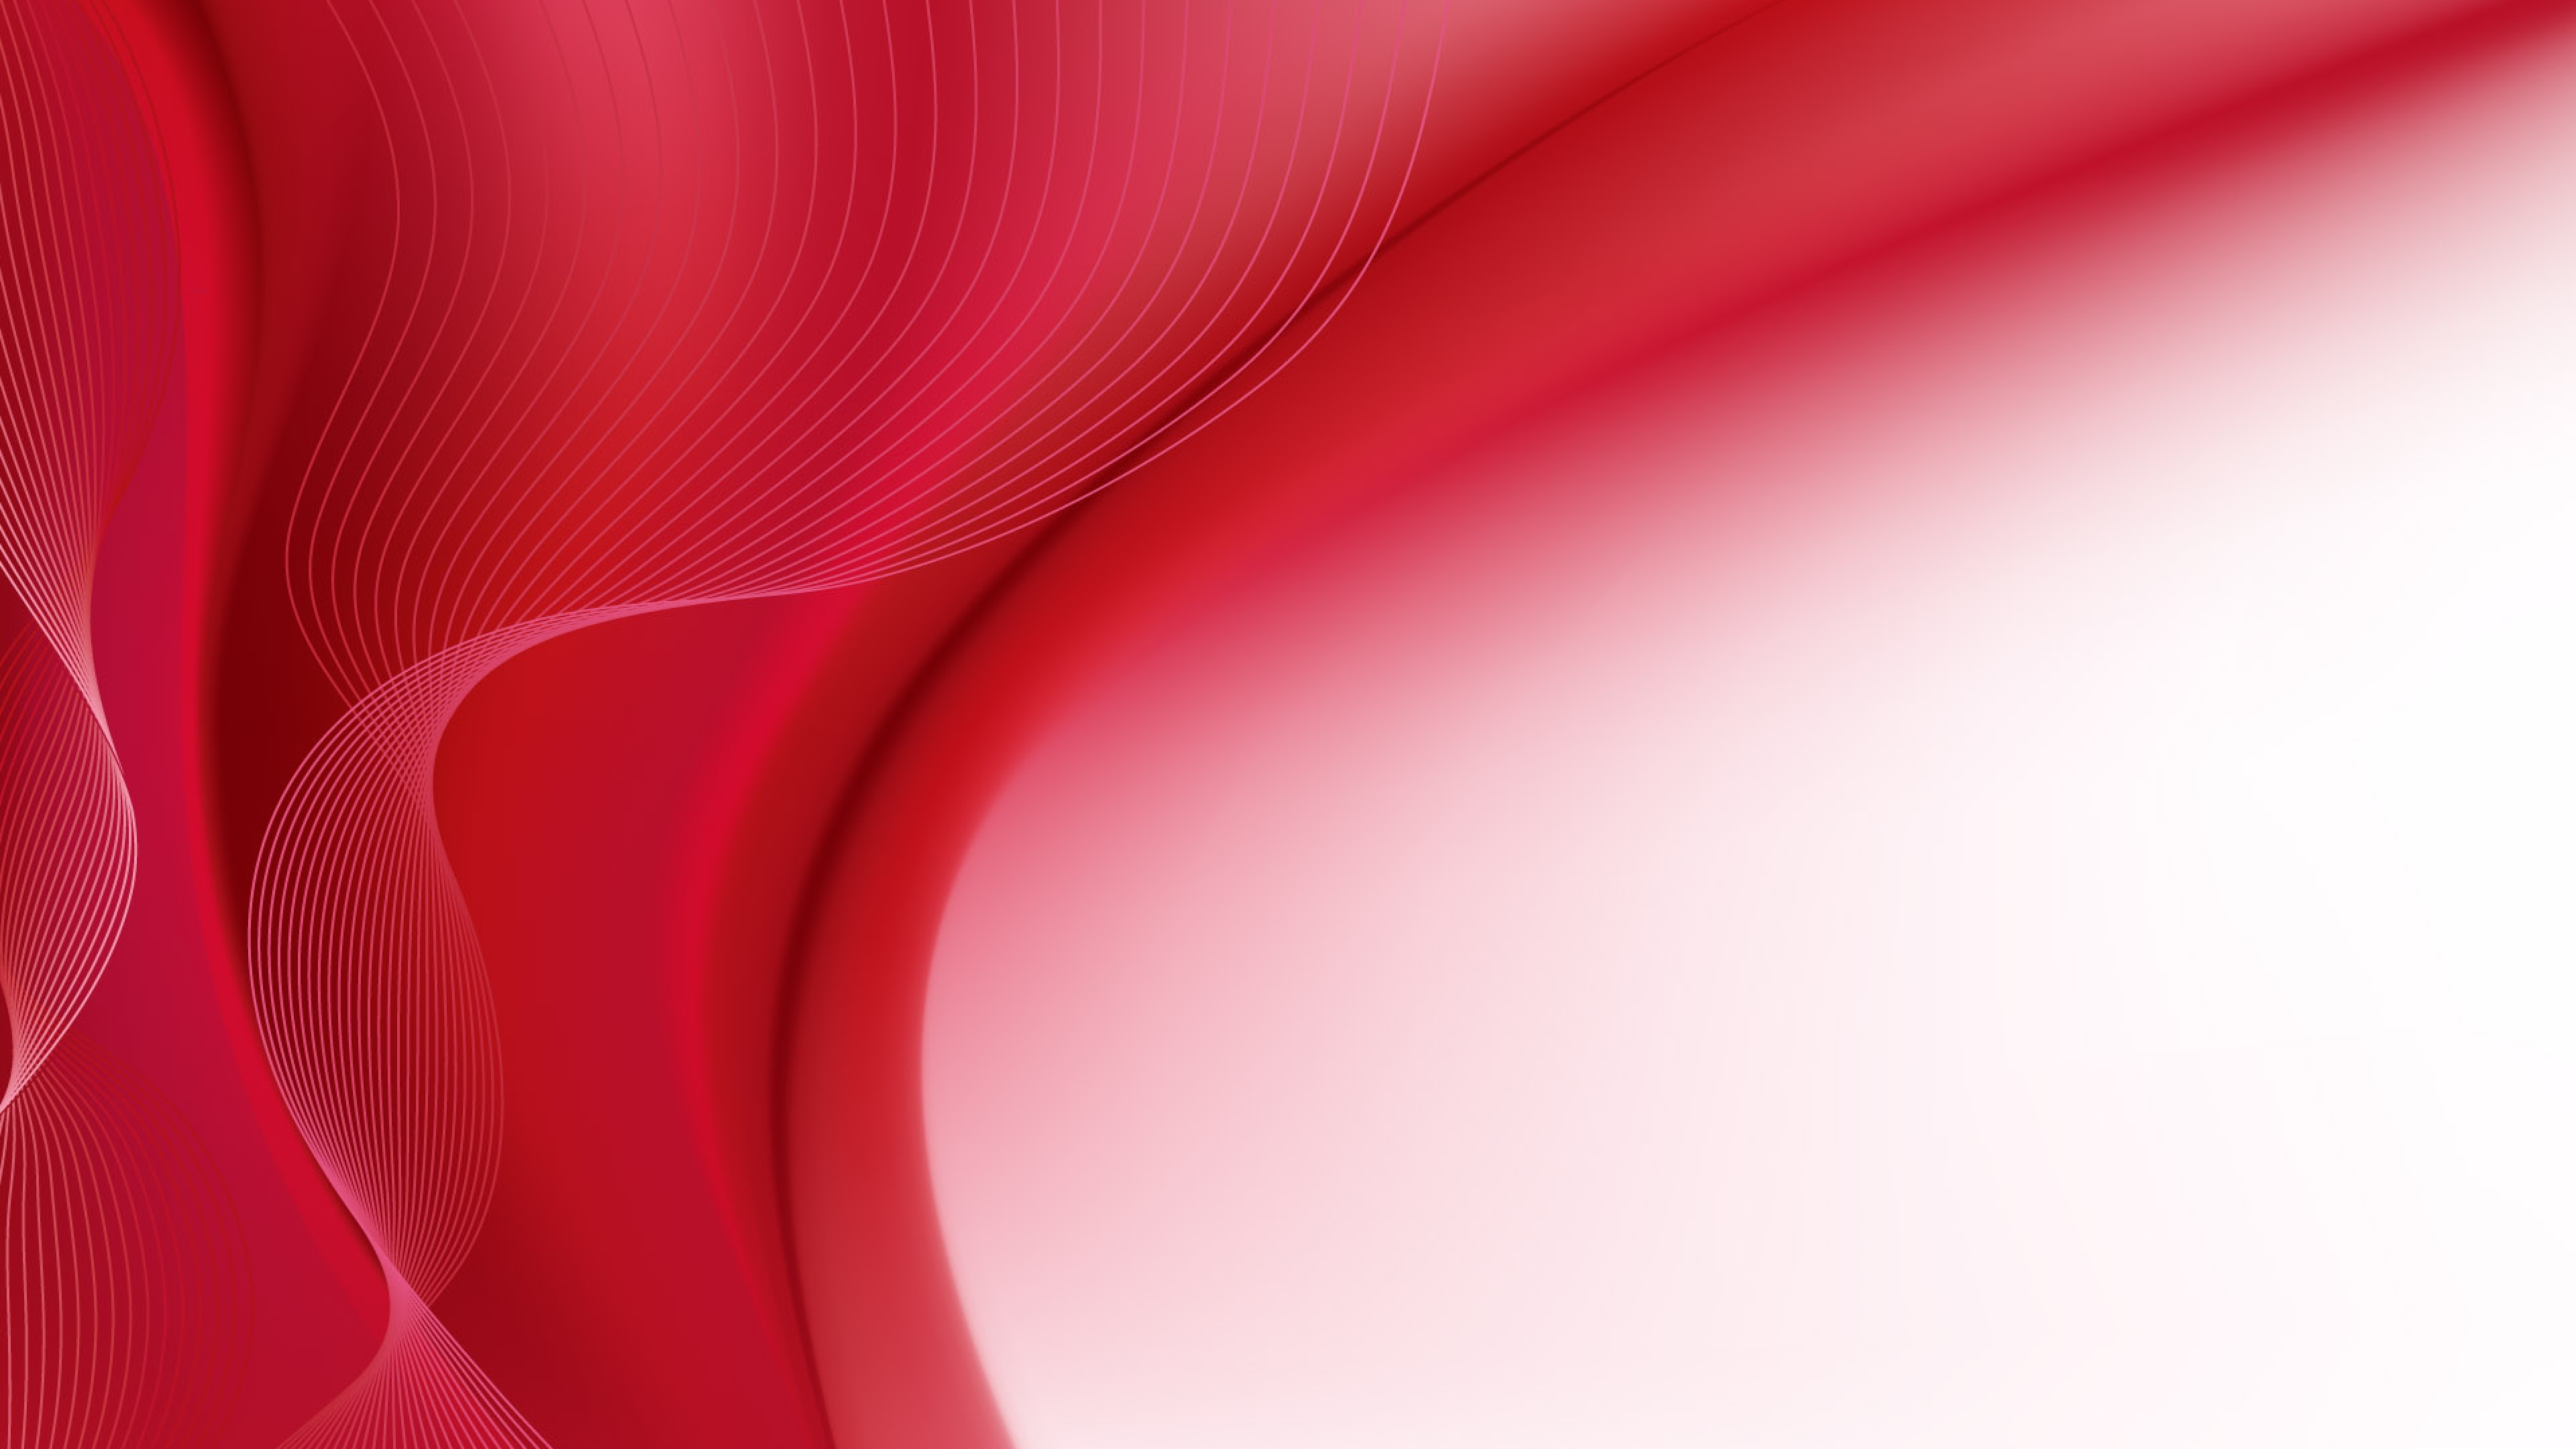 Red Background Wallpaper Design Art